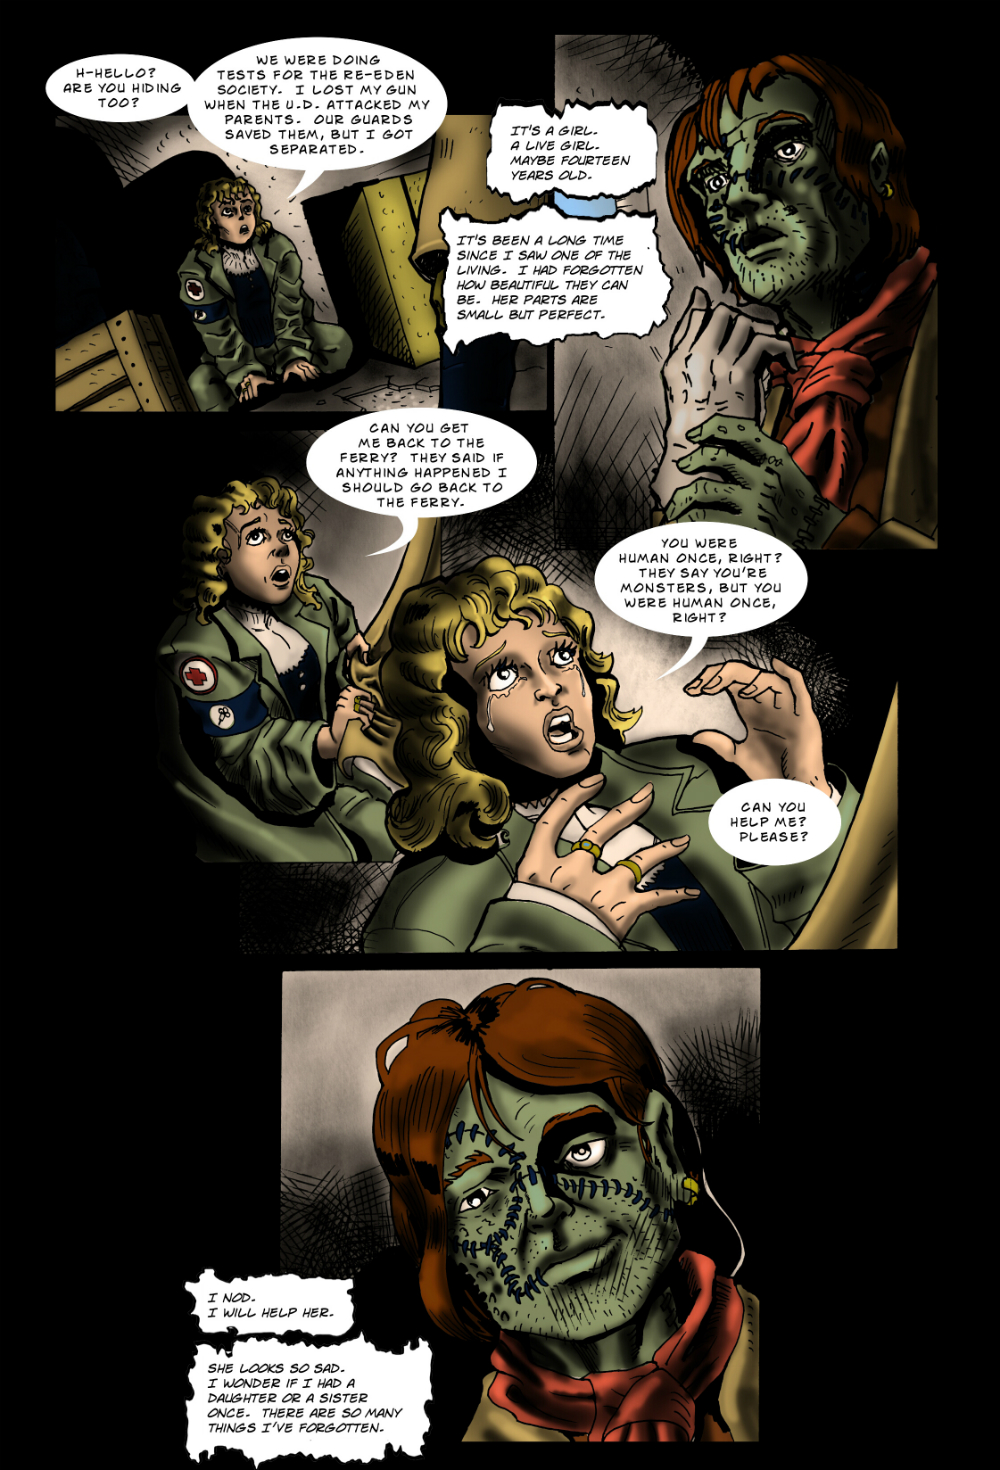 PARTS page 6 -- from THE BOOK OF LIES